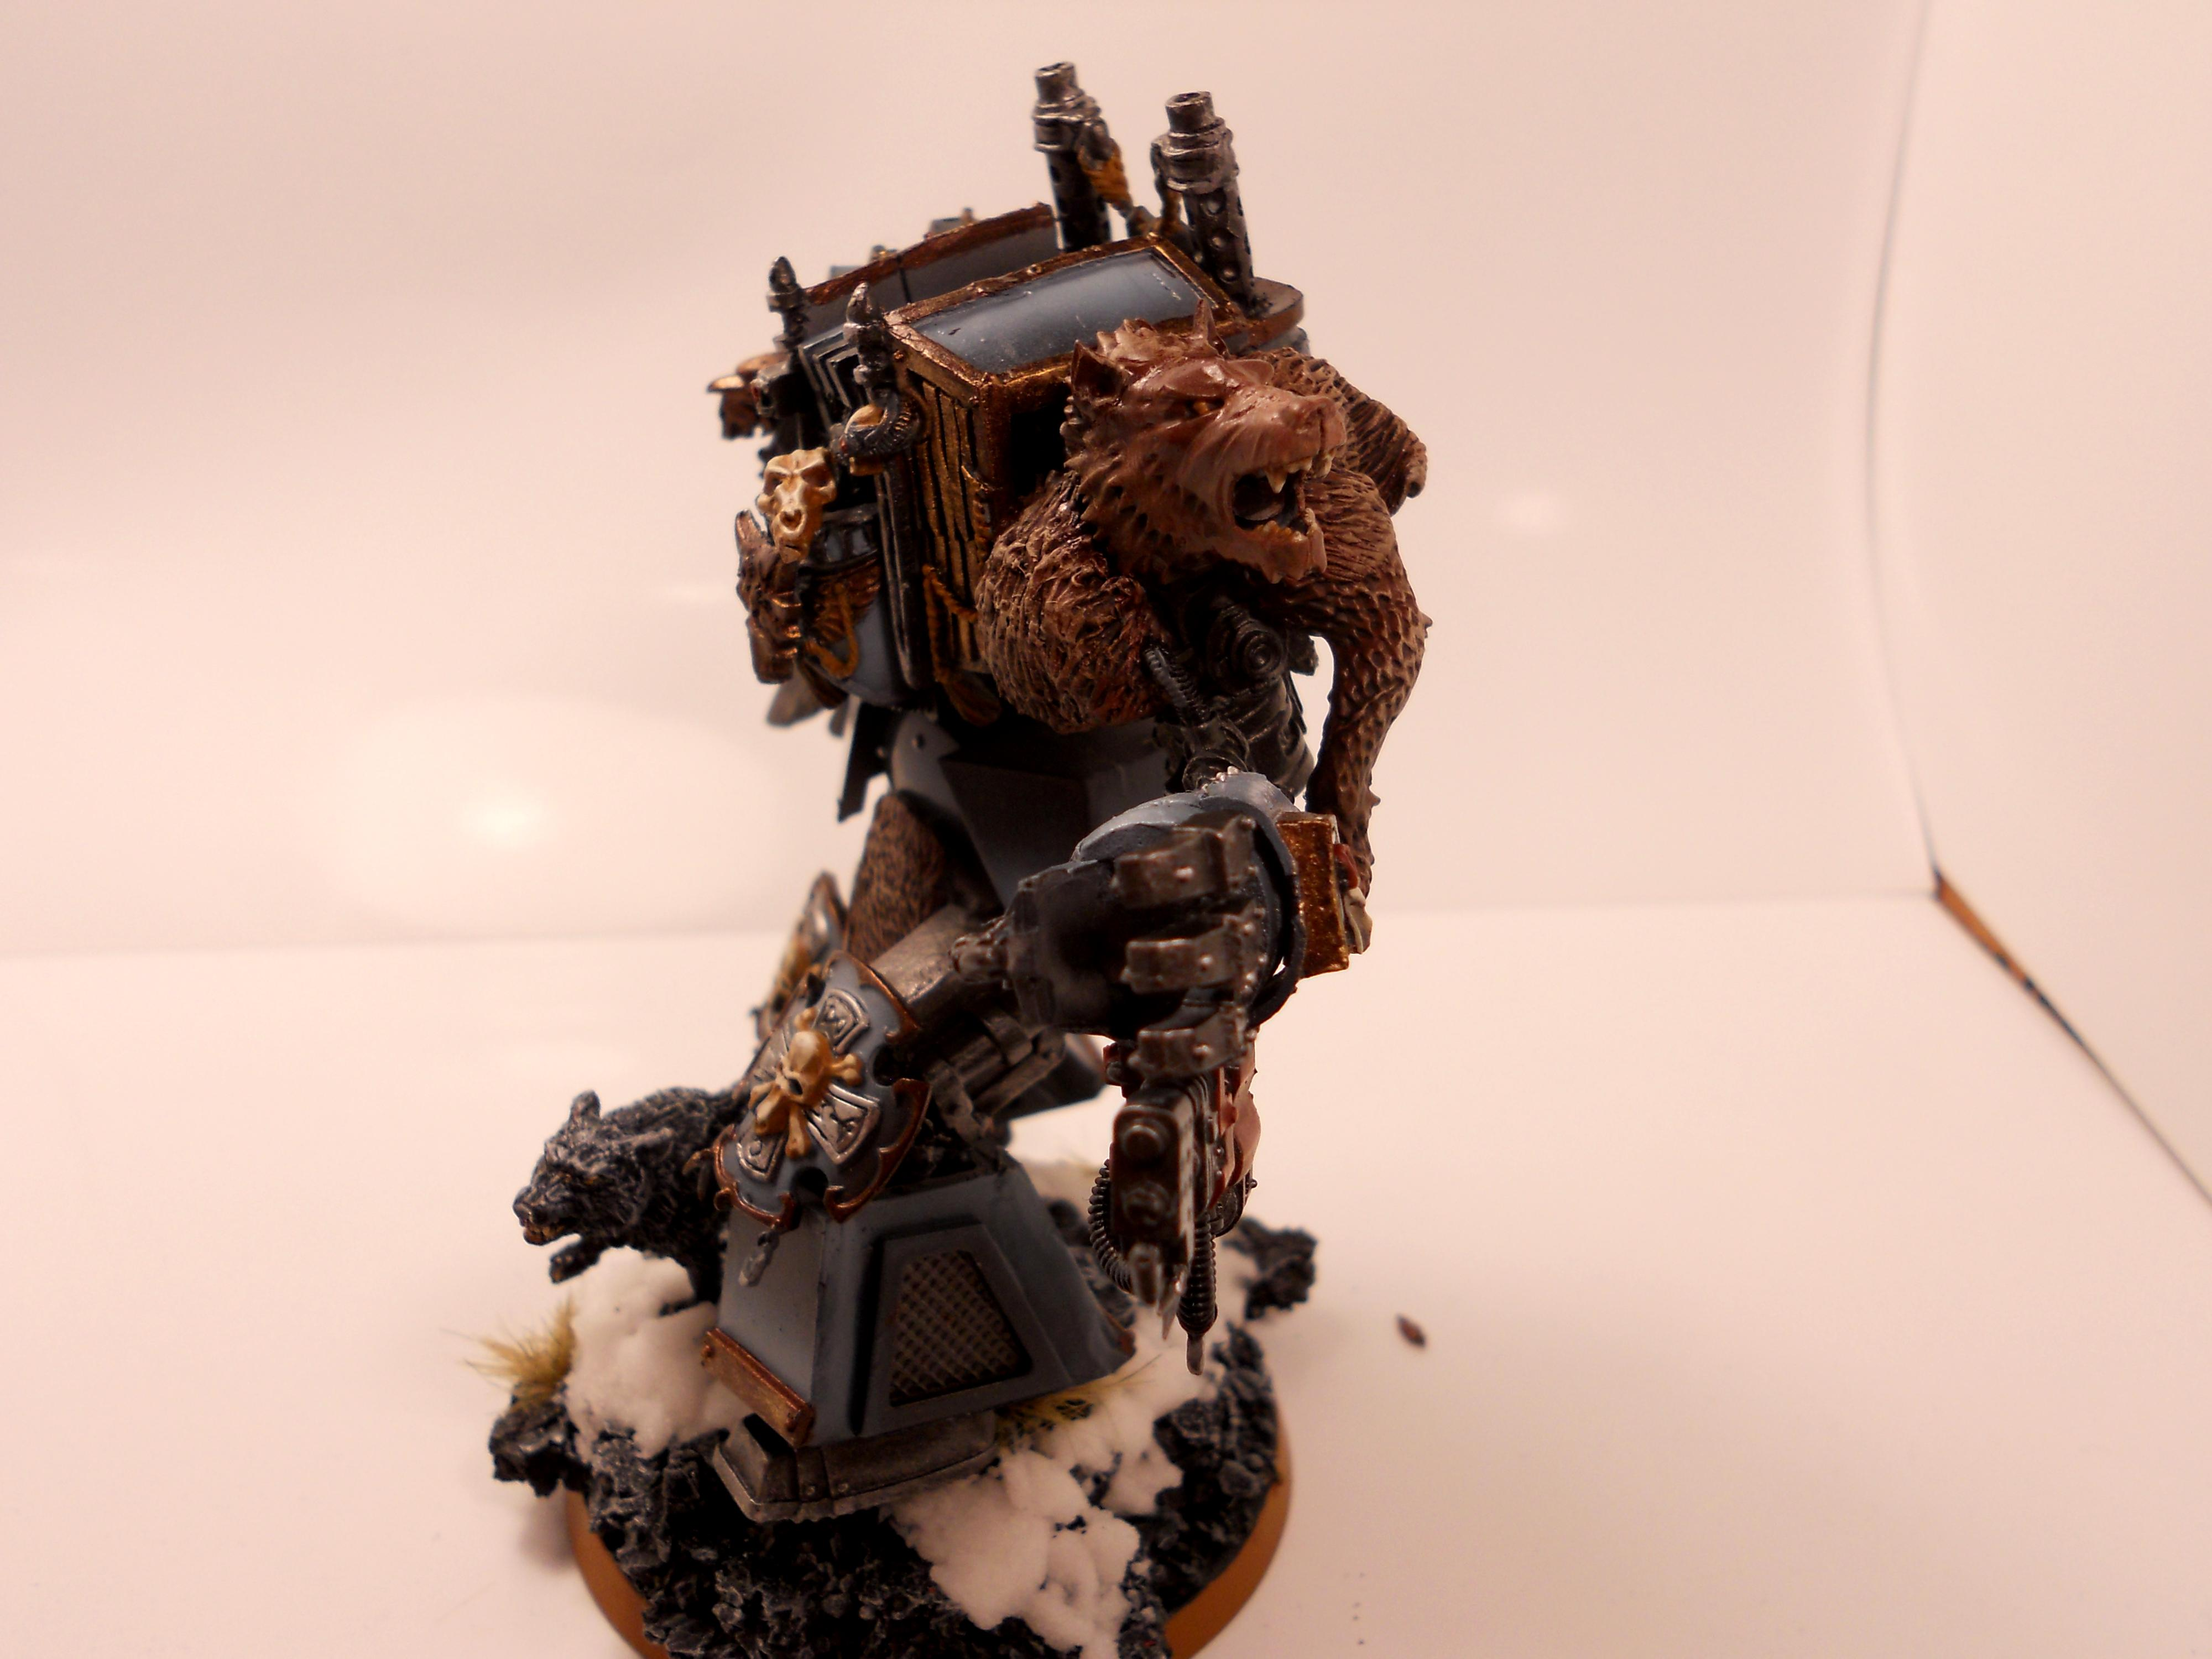 Bjorn, Dreadnought, Imperium, Space Marines, Space Wolves, Sw, Warhammer 40,000